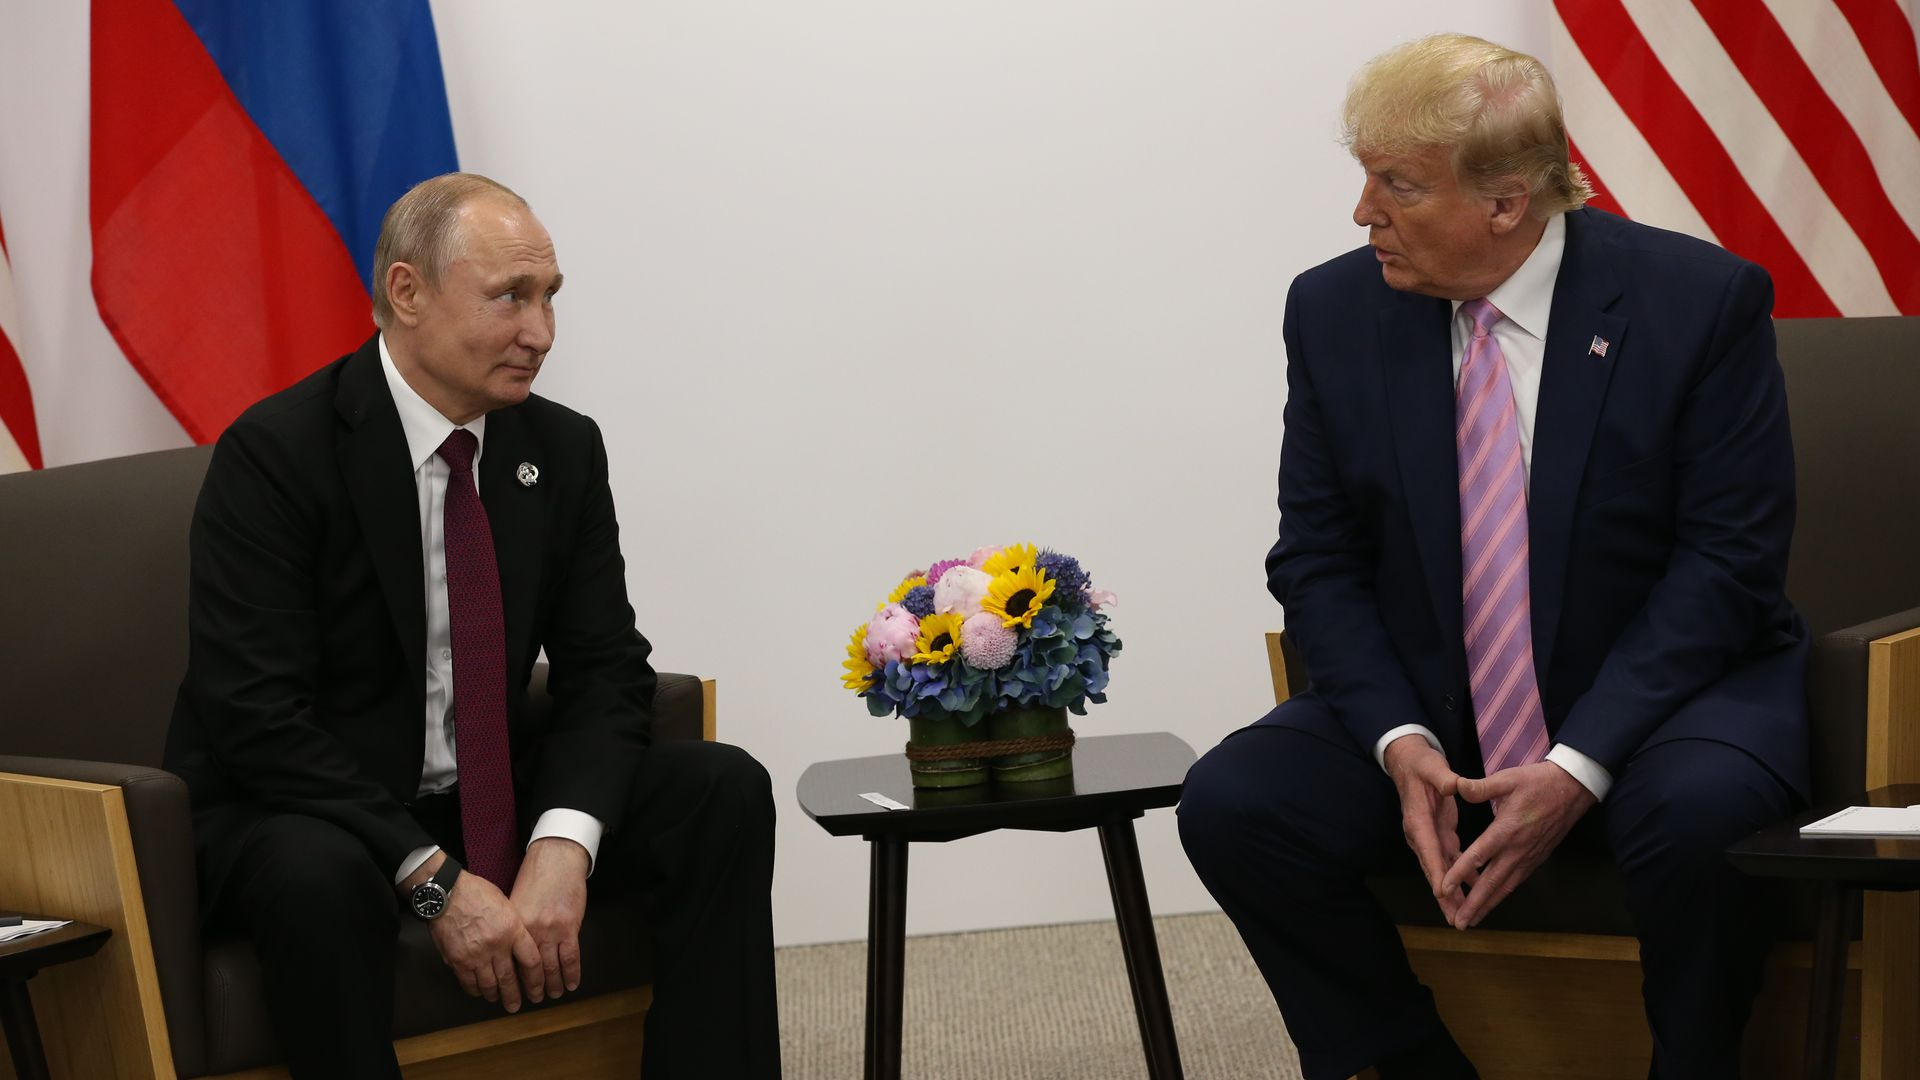 President Donald Trump (R) and Russian President Vladimir Putin (L) attend their bilateral meeting at the G20 Osaka Summit 2019, in Osaka, Japan